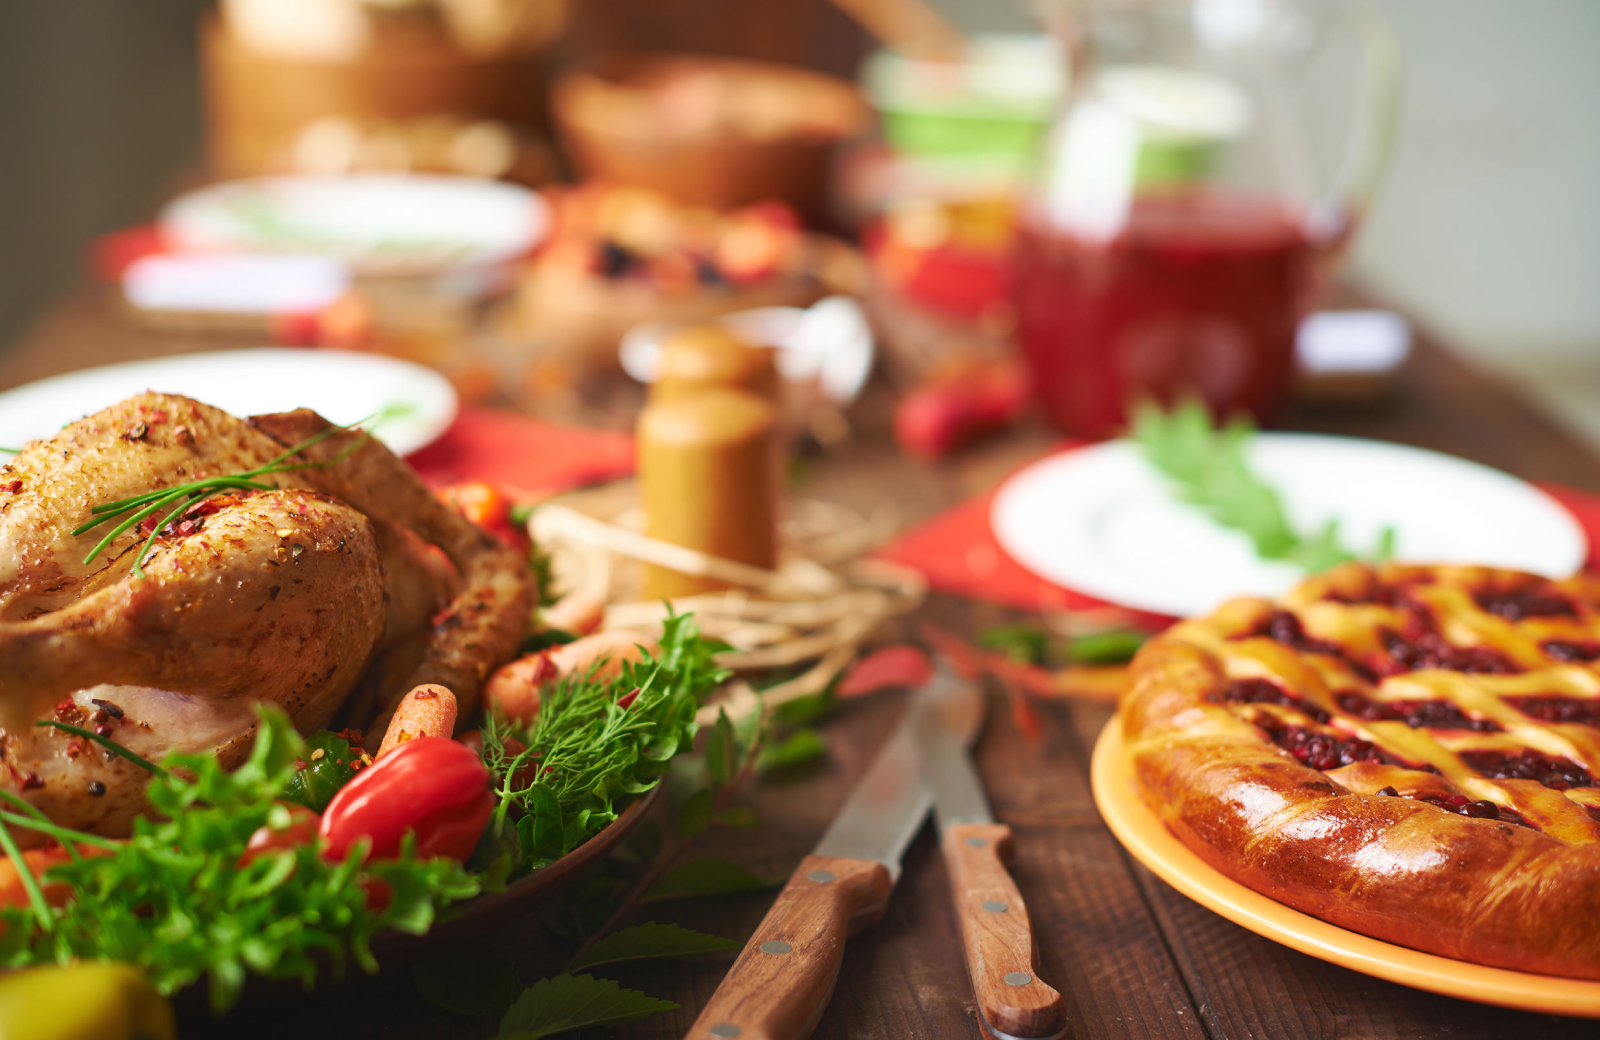 Celebrate Thanksgiving in Norwalk - The Waypointe Apts